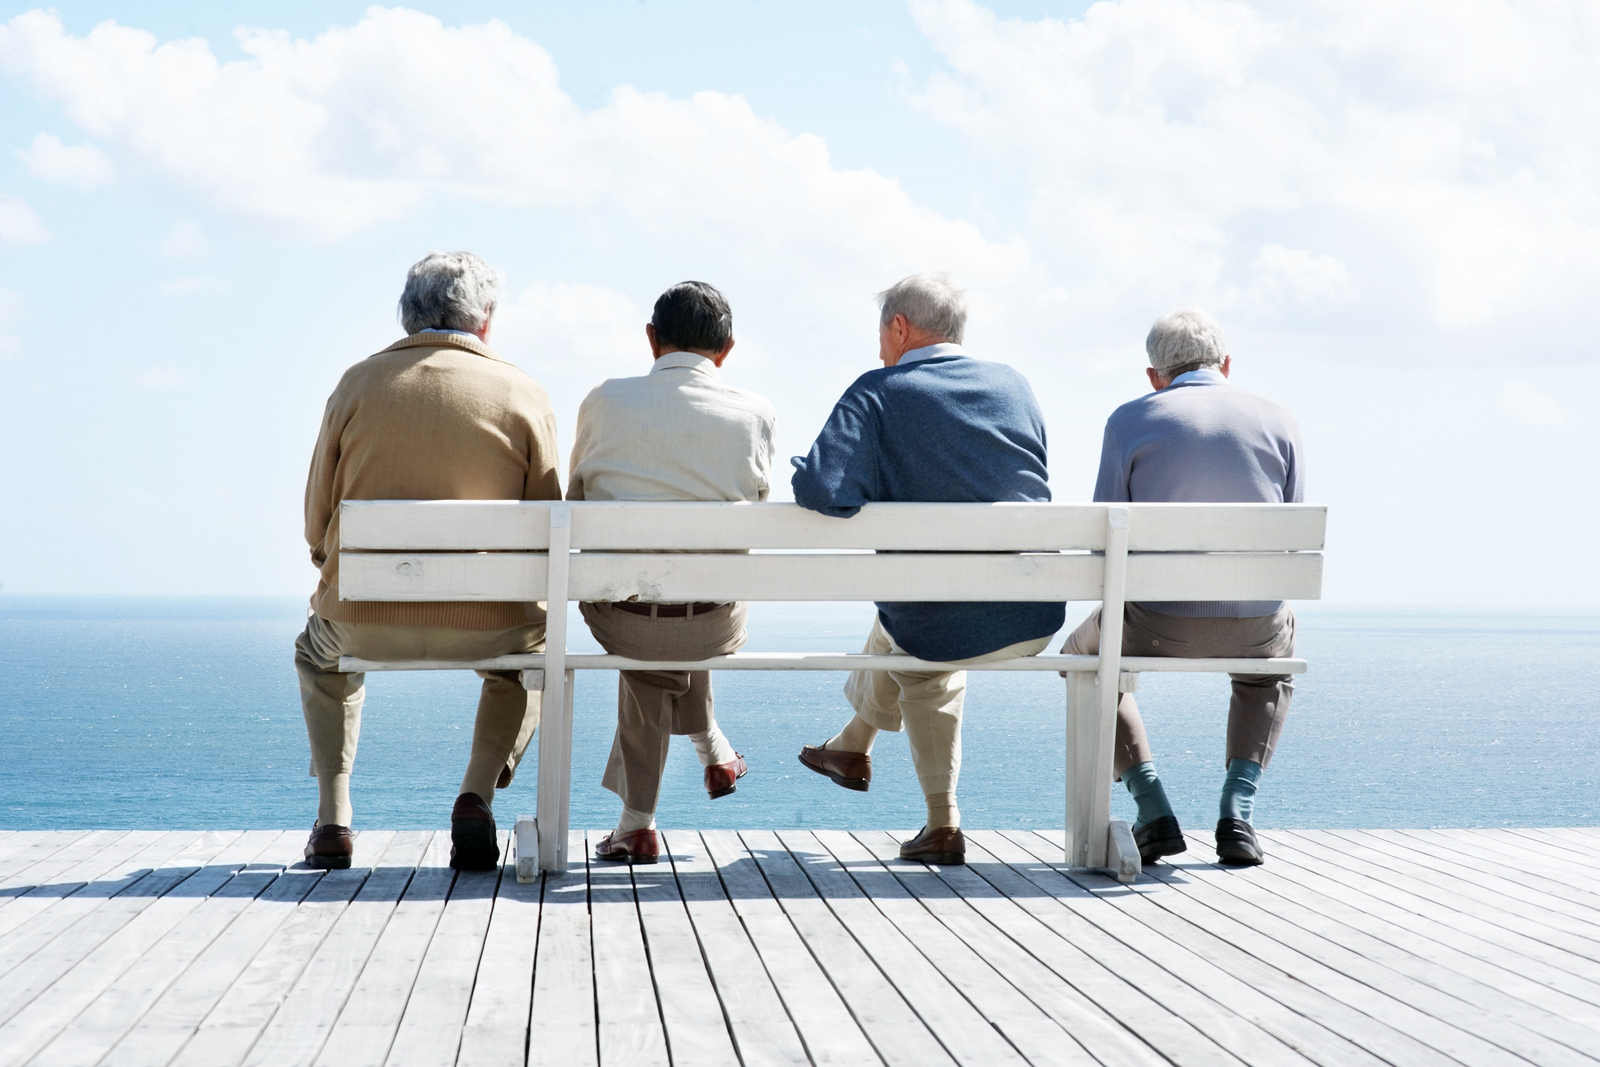 4 old men sitting on a bench